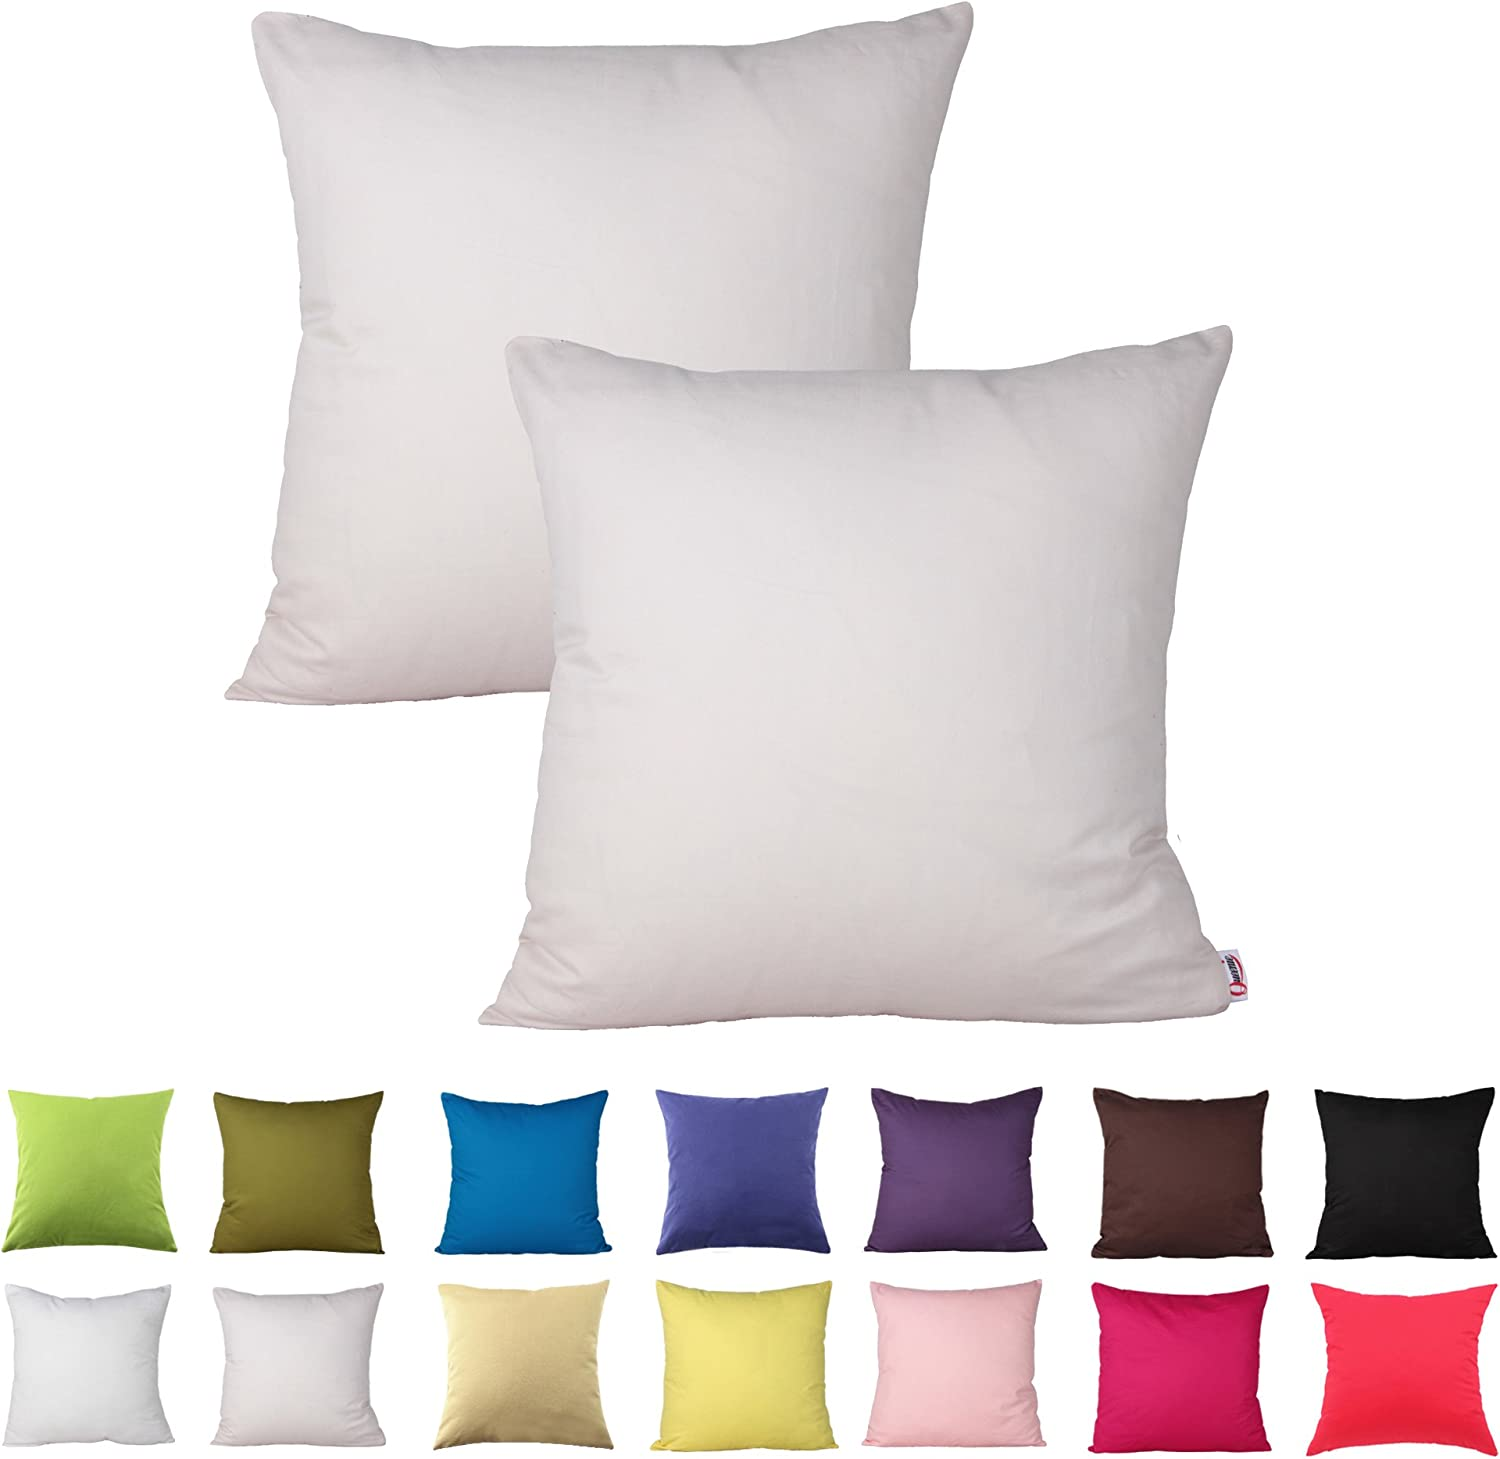 Queenie - Don't miss the campaign 2 Pcs Solid Decorative Free shipping Color Cotton Pillowcase Cushion